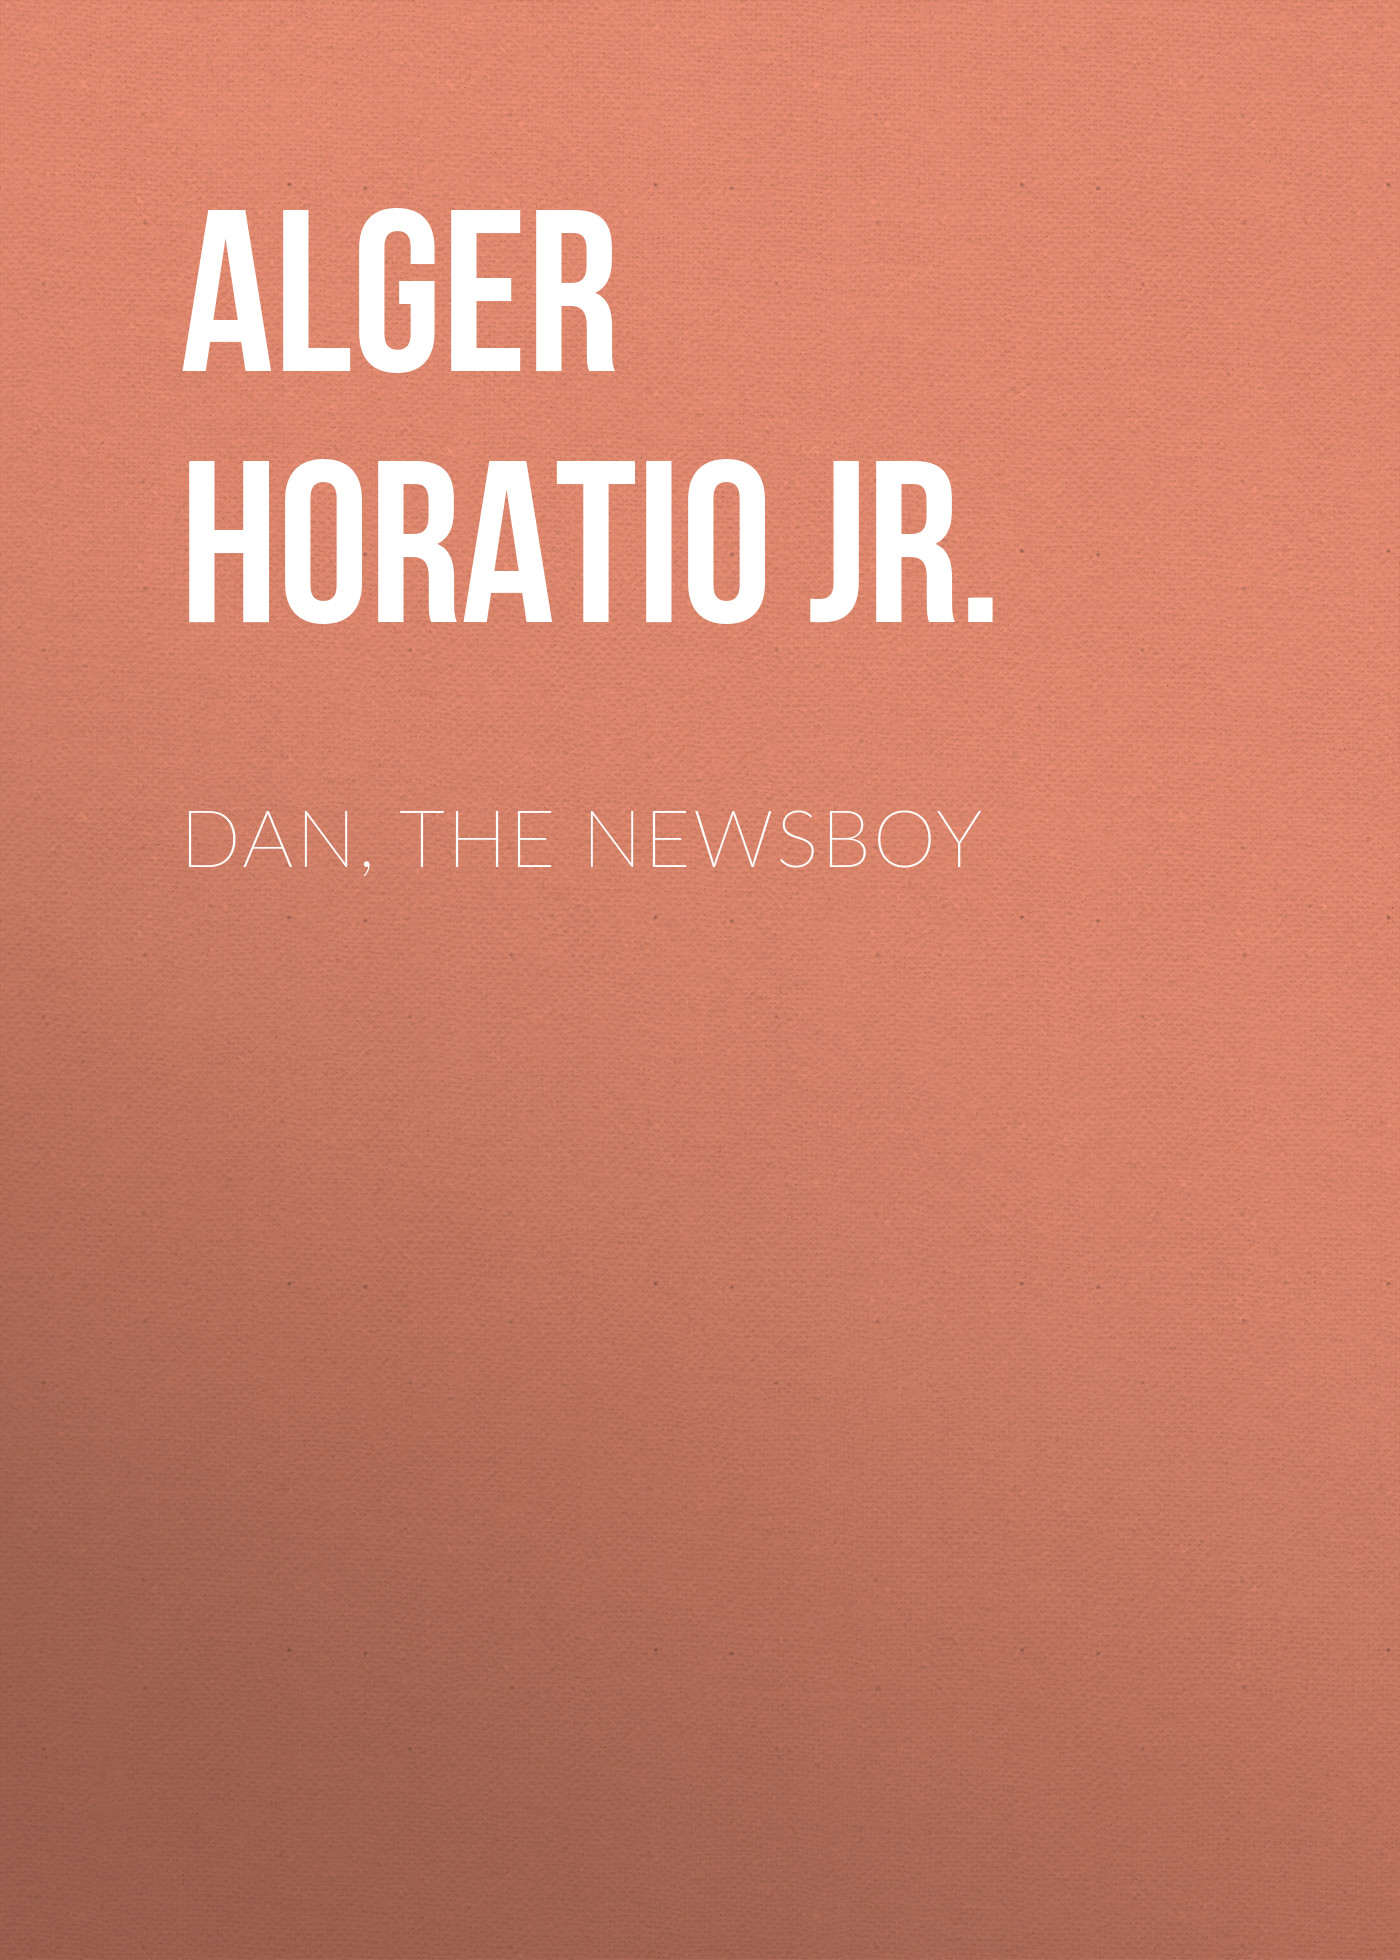 Alger Horatio Jr. Dan, The Newsboy